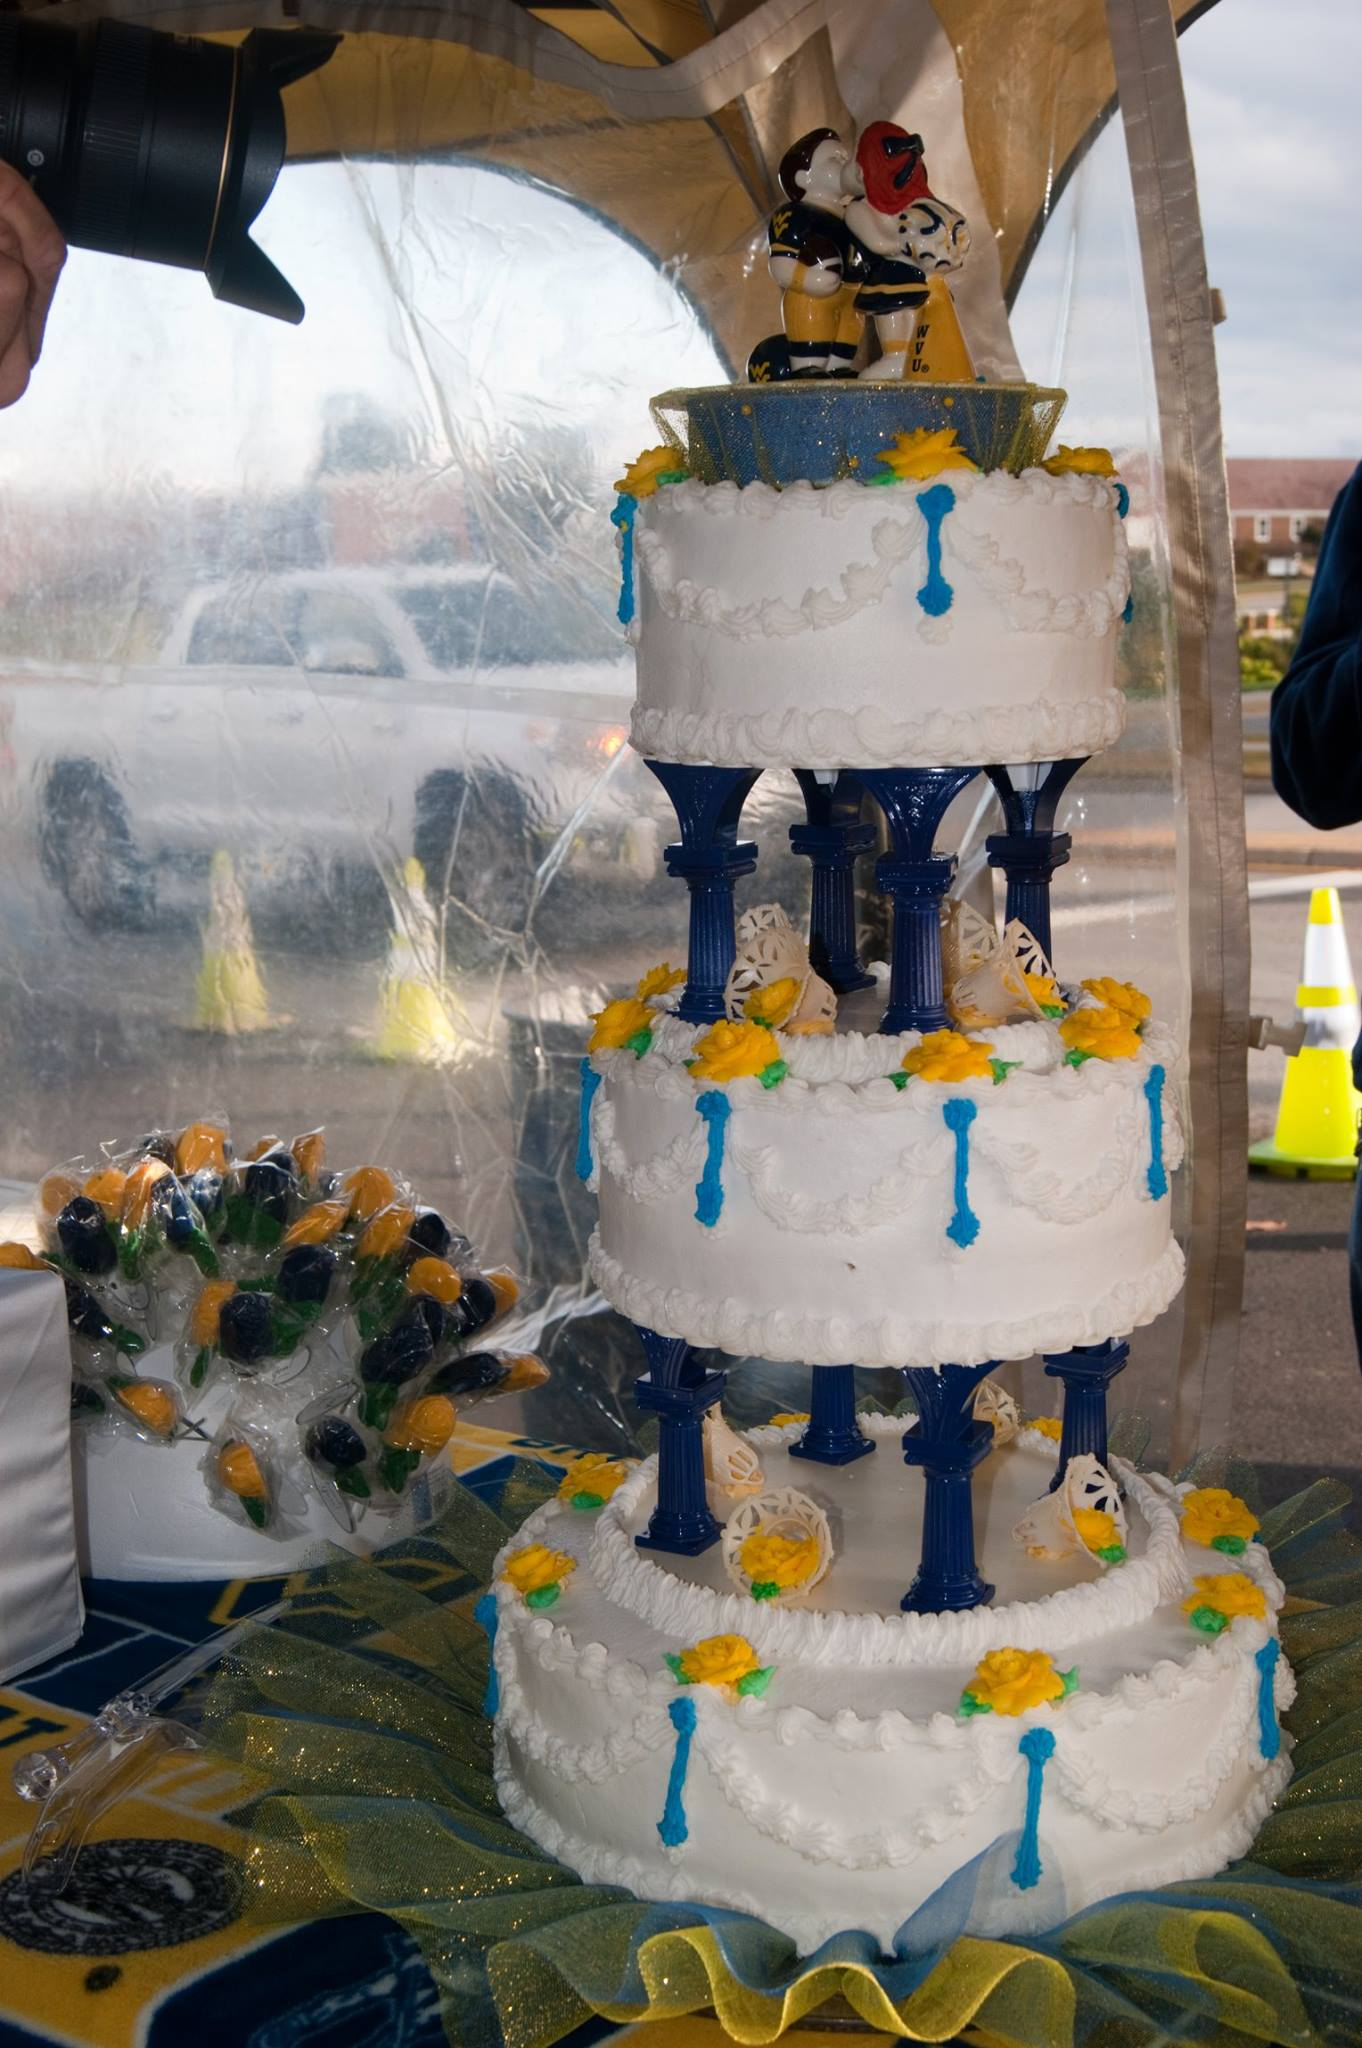 WVU-themed wedding cake